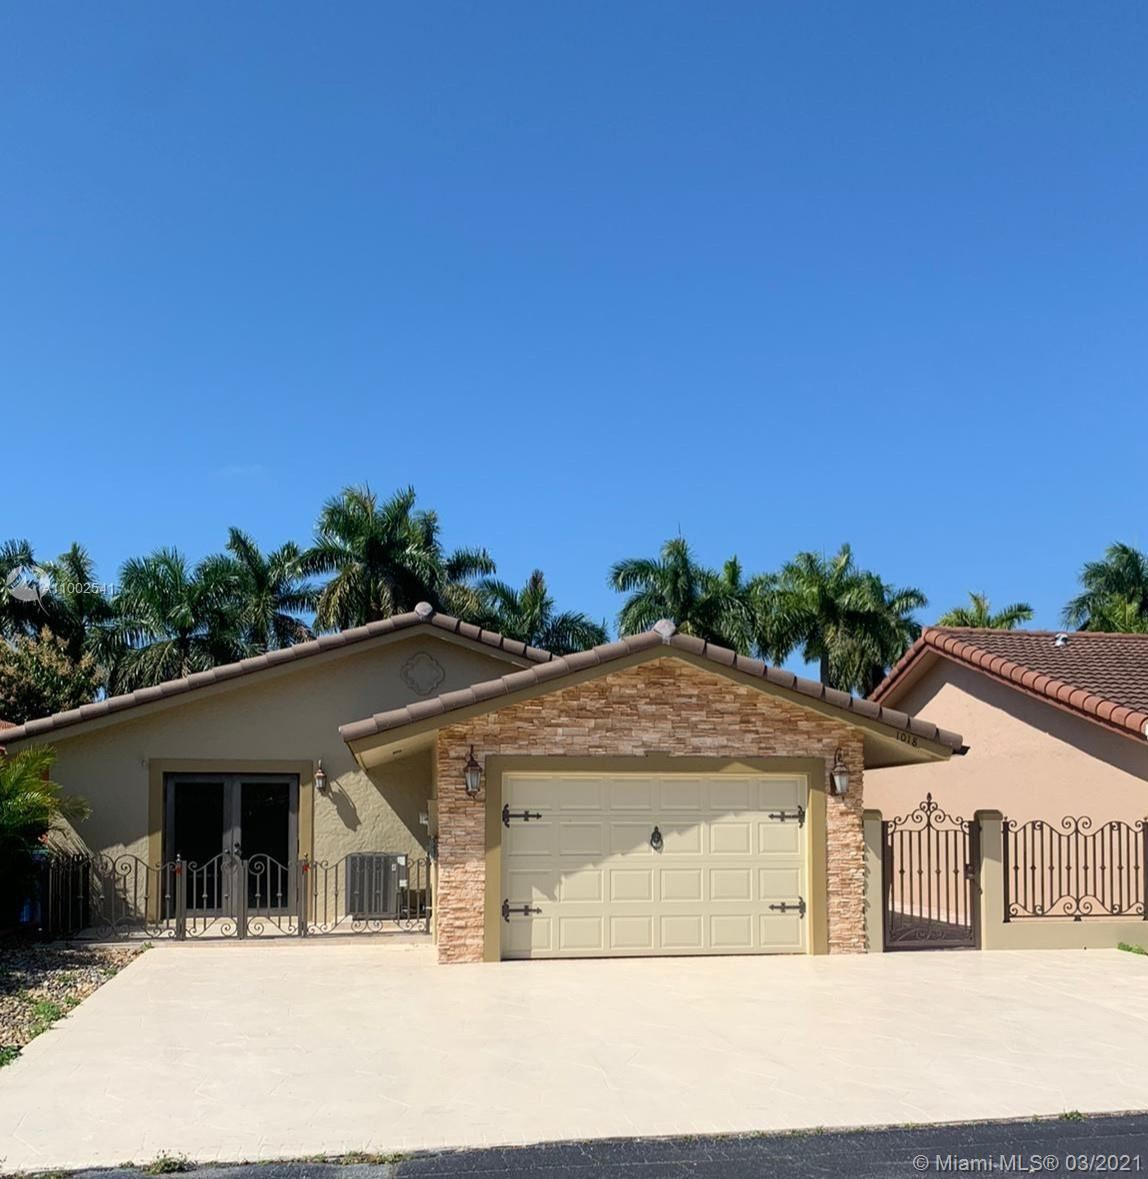 1018 SW 136th Pl, Miami, FL 33184 - #: A11002541